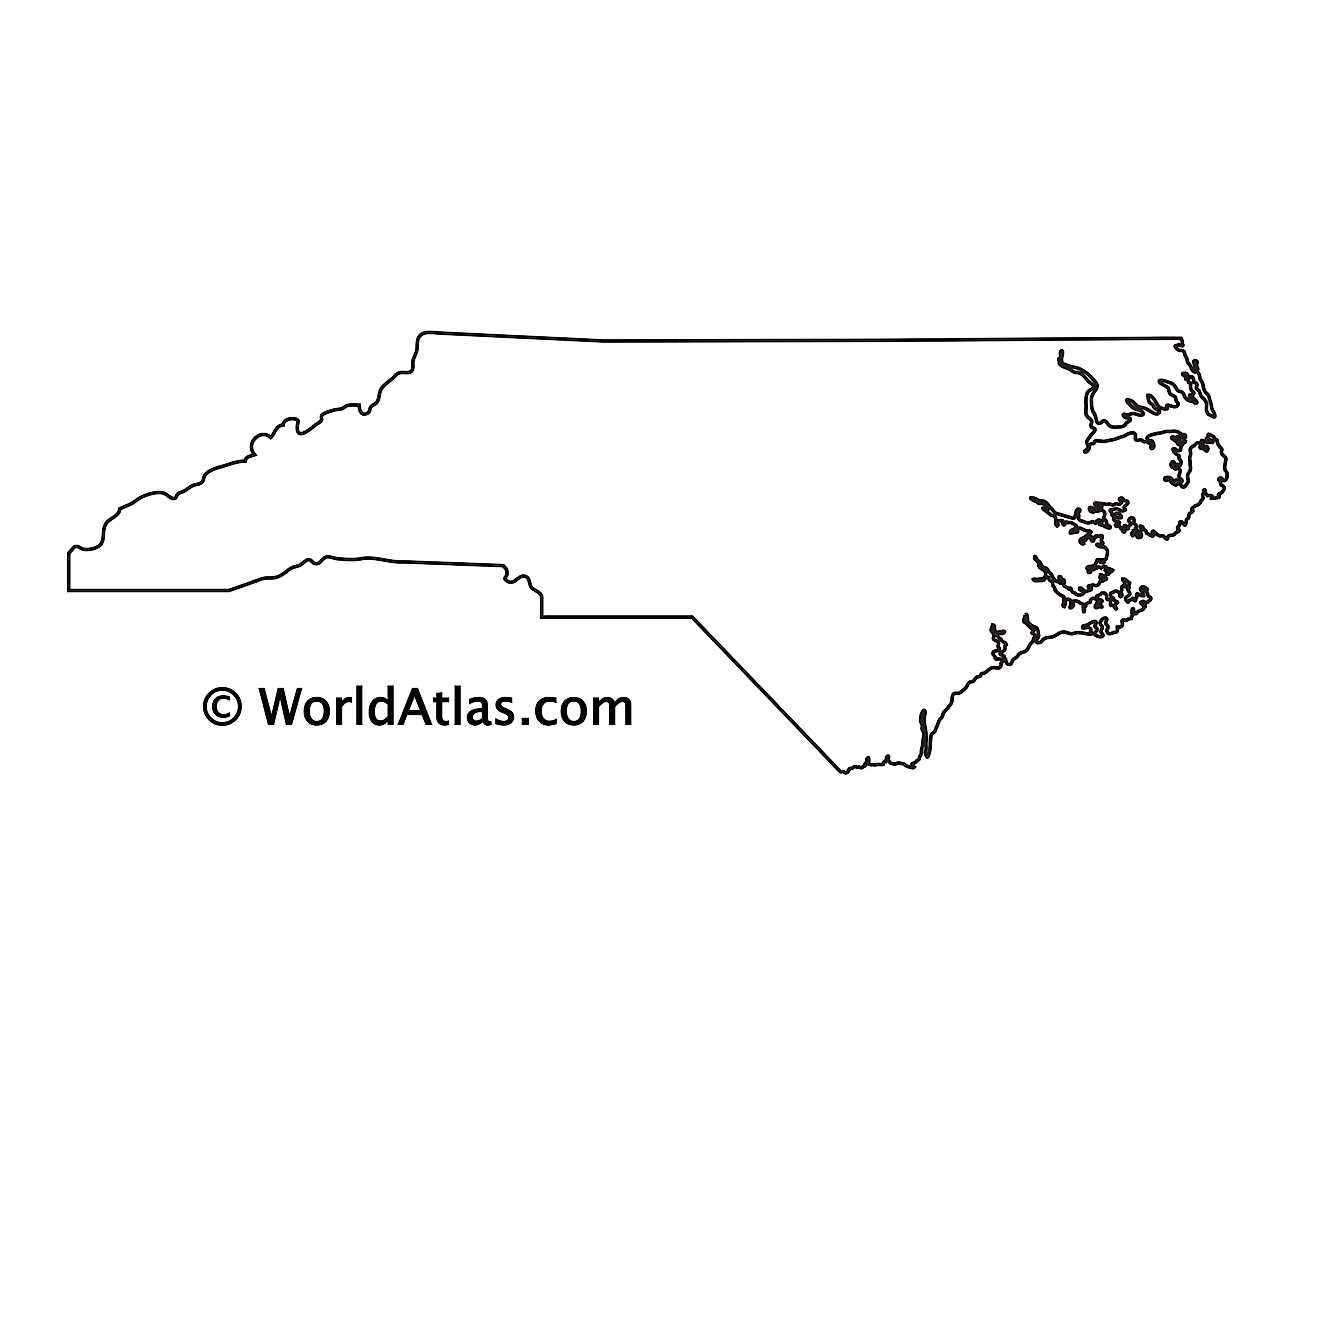 Blank Outline Map of North Carolina